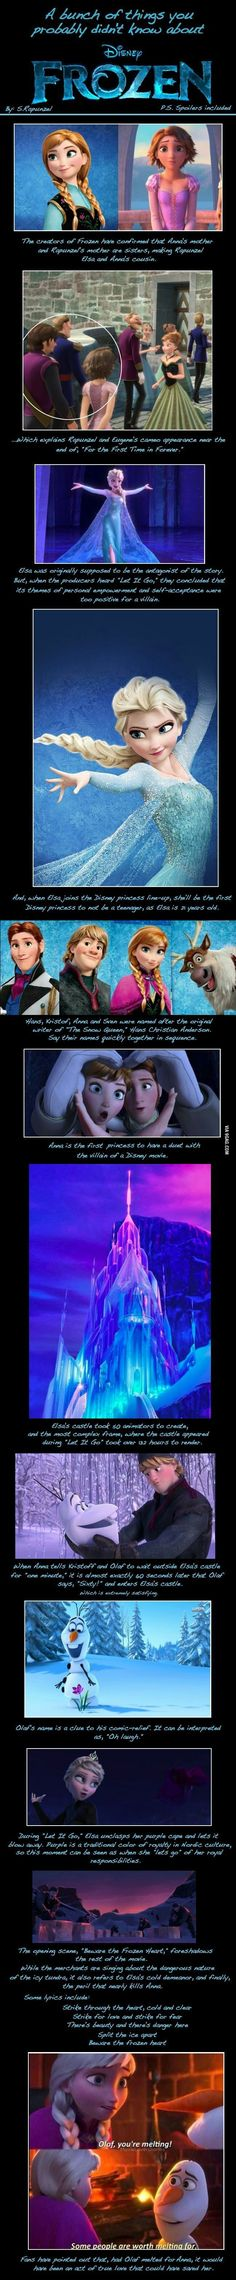 Some stuff about Frozen that you probably didn't know (dang it Olaf!! you're too sweet!!)